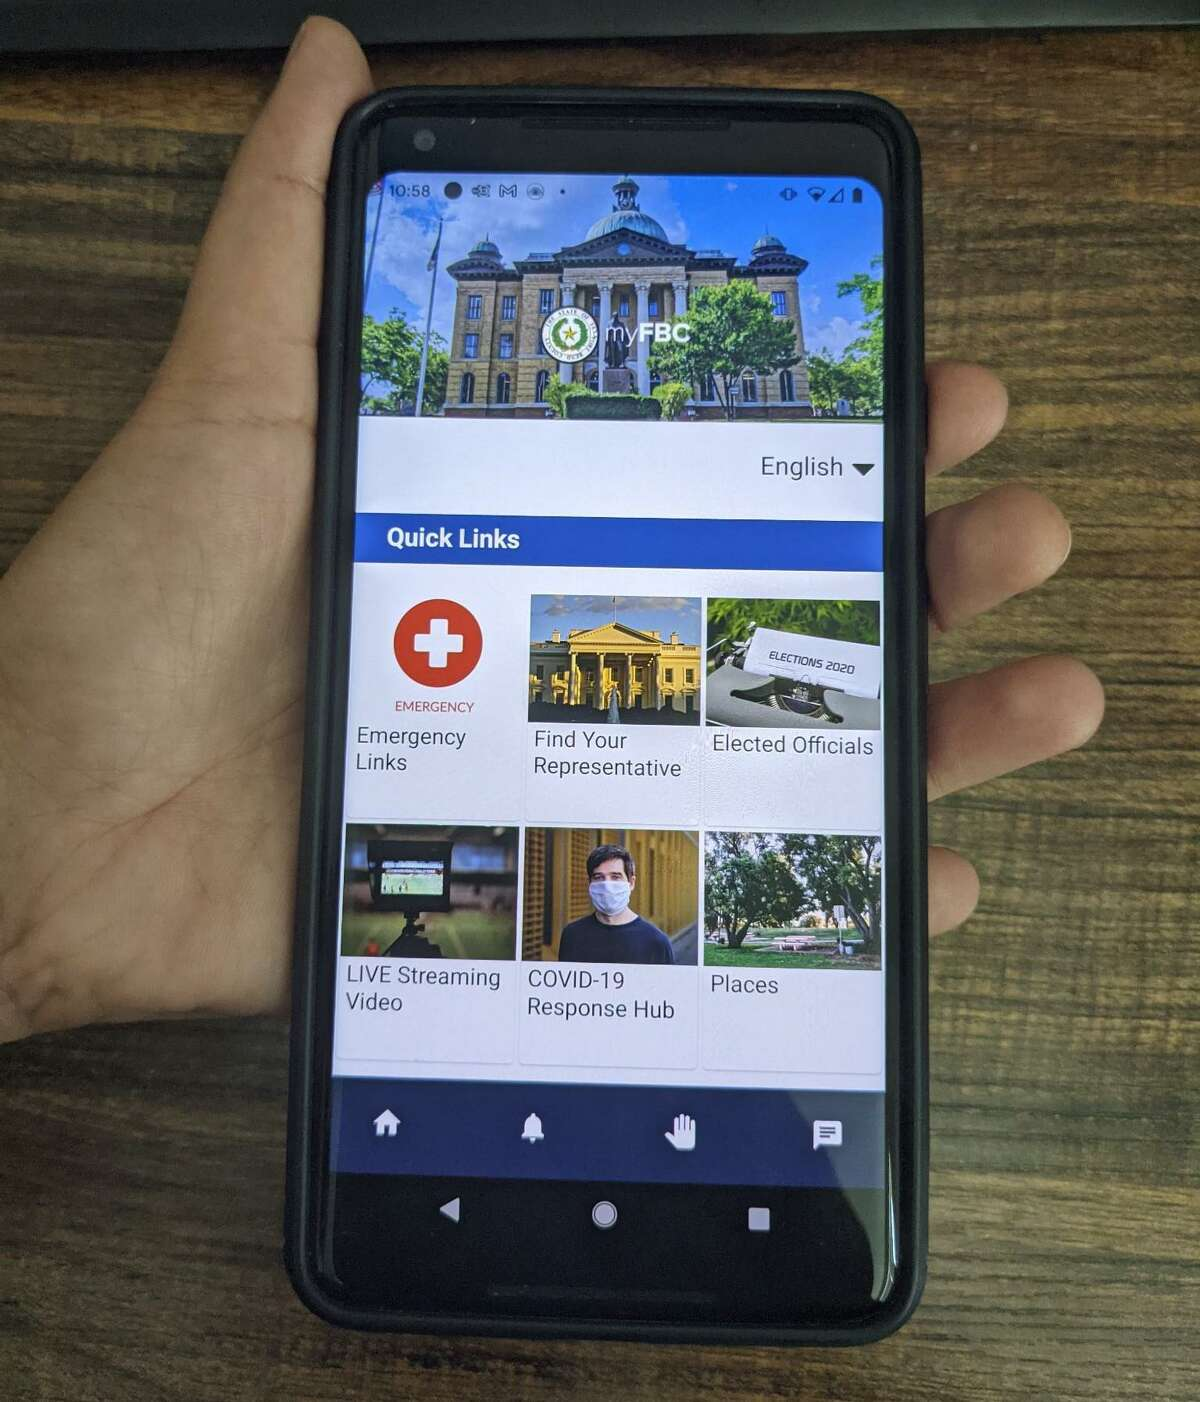 Fort Bend County residents are encouraged to download the interactive, civic engagement mobile app, 'myFBC' on their phones.